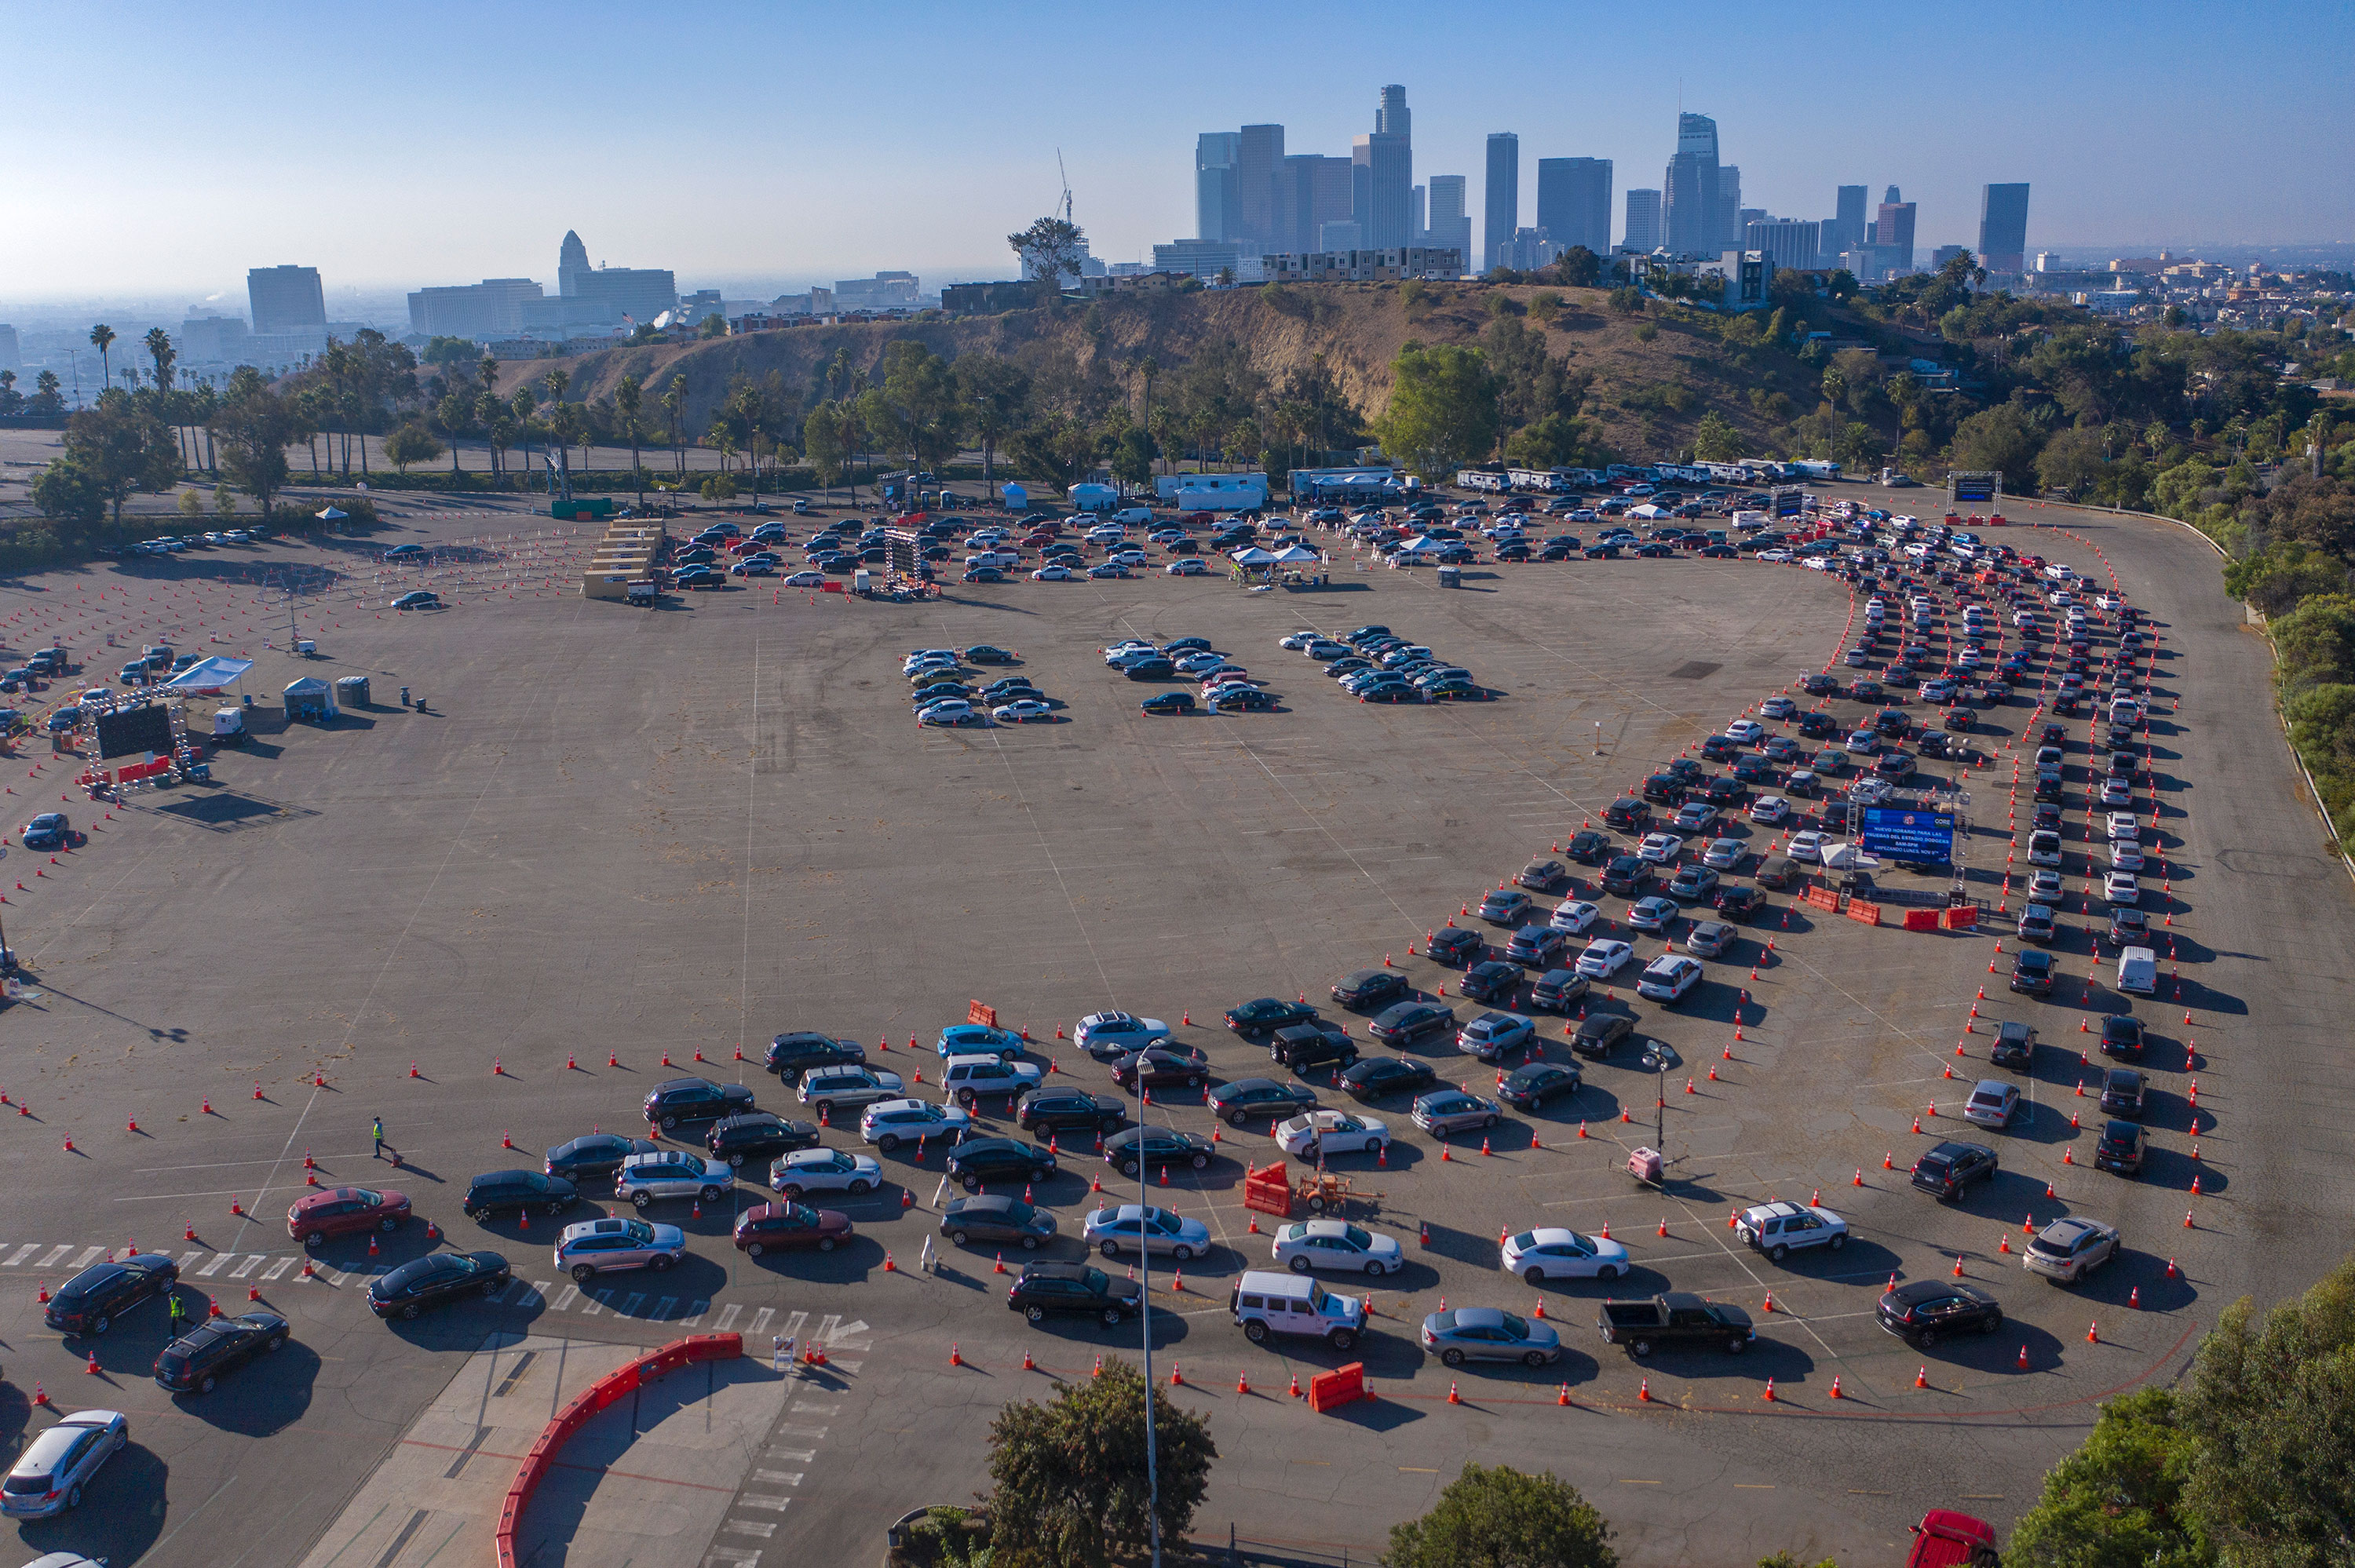 Motorists line up for Covid-19 testing at Dodger Stadium on November 14 in Los Angeles, California.